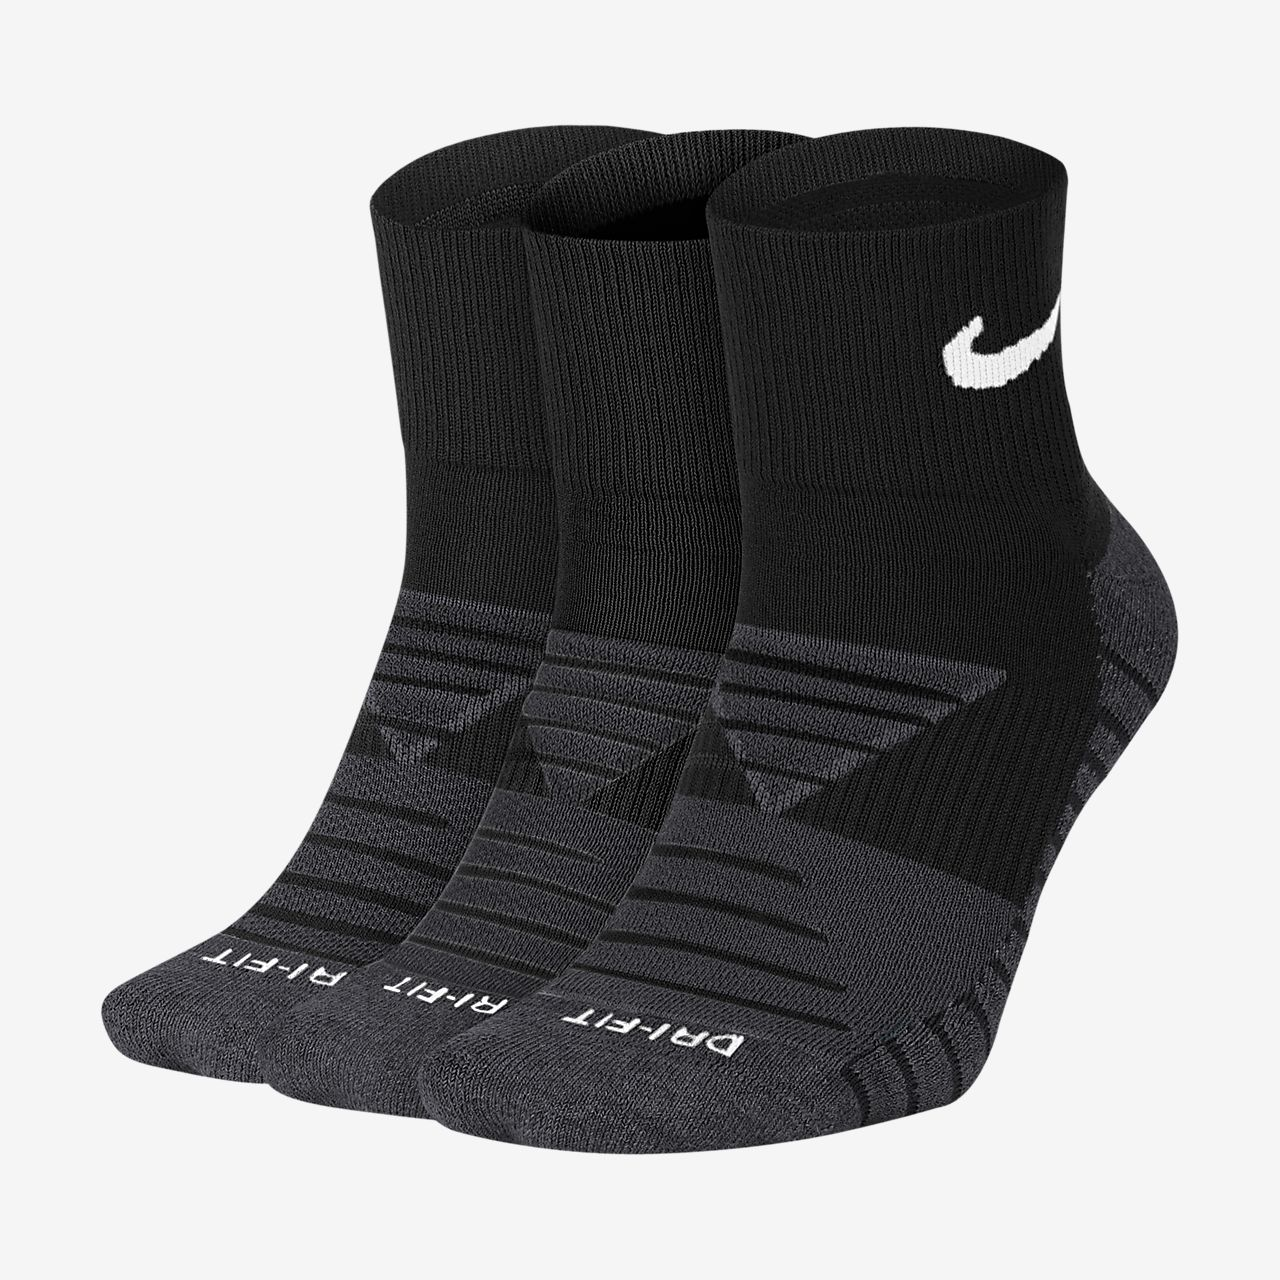 c0deaccd1e93 Nike Dry Cushion Quarter Training Socks (3 Pair). Nike.com AU